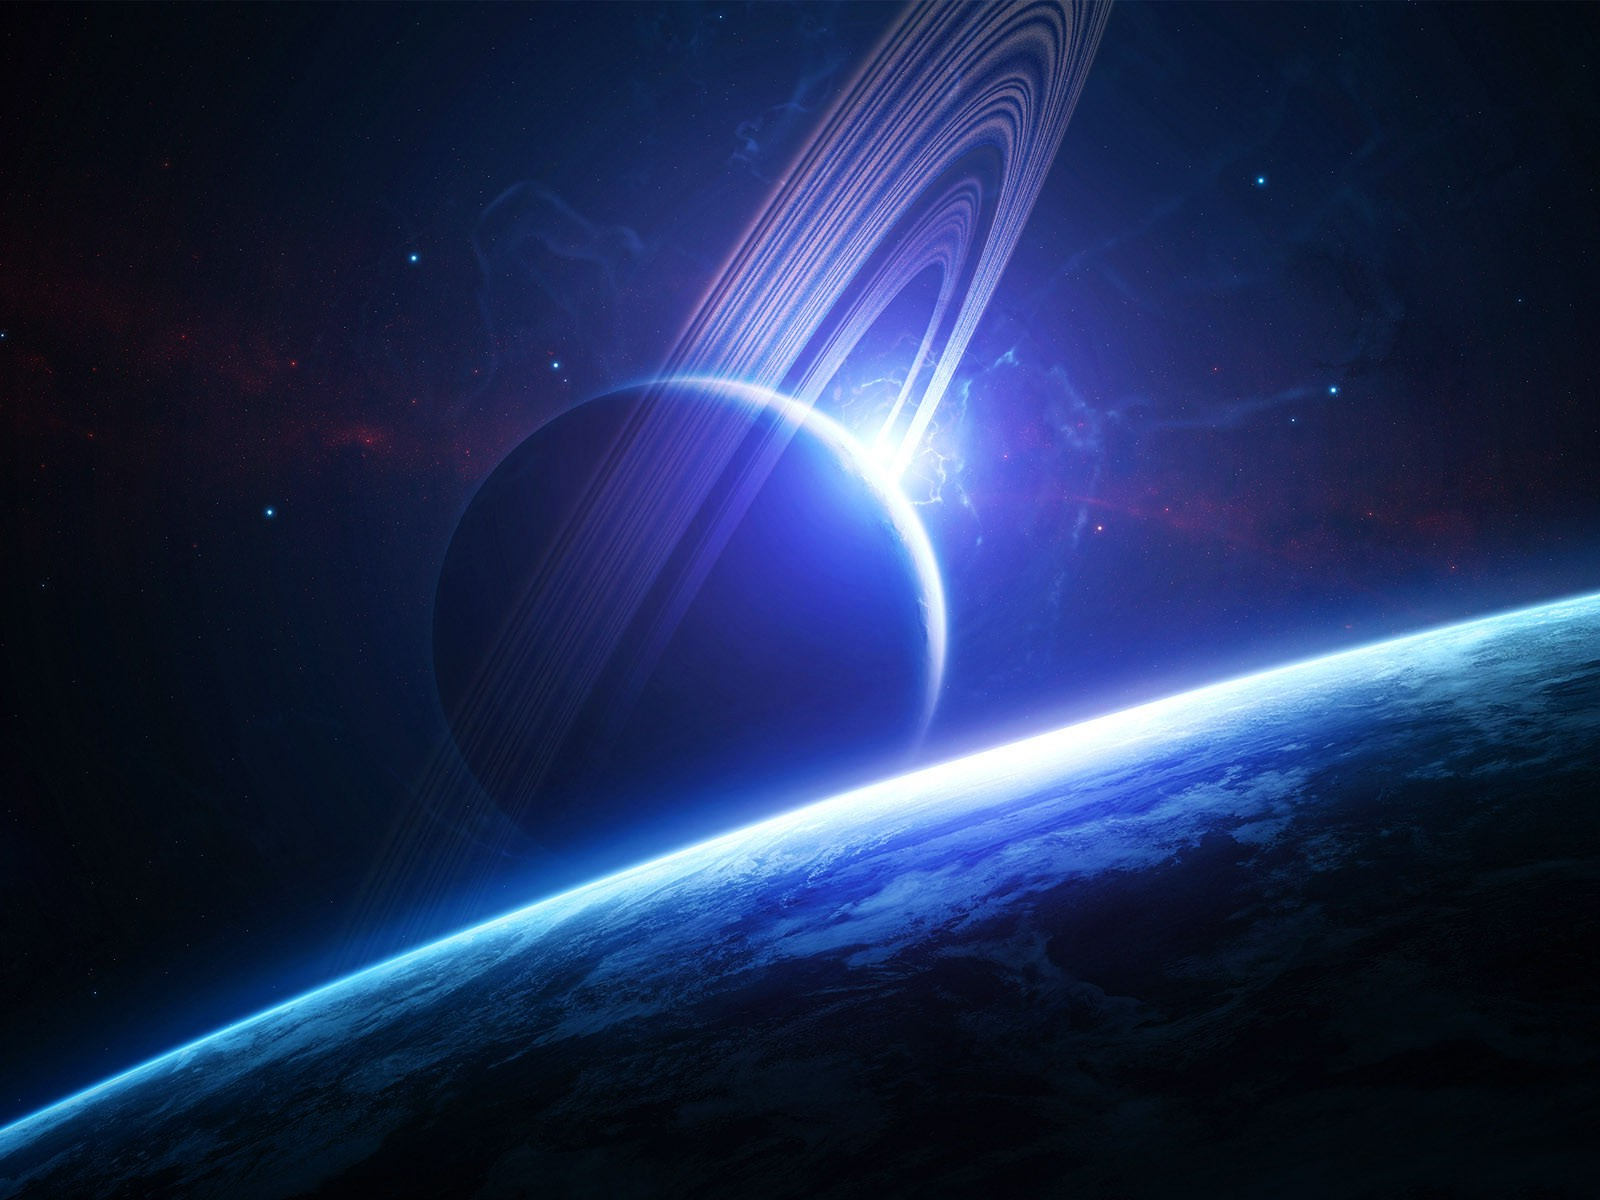 Space Journey 3d Wallpaper Spacescapes Space Art Space Planet Planetary Rings